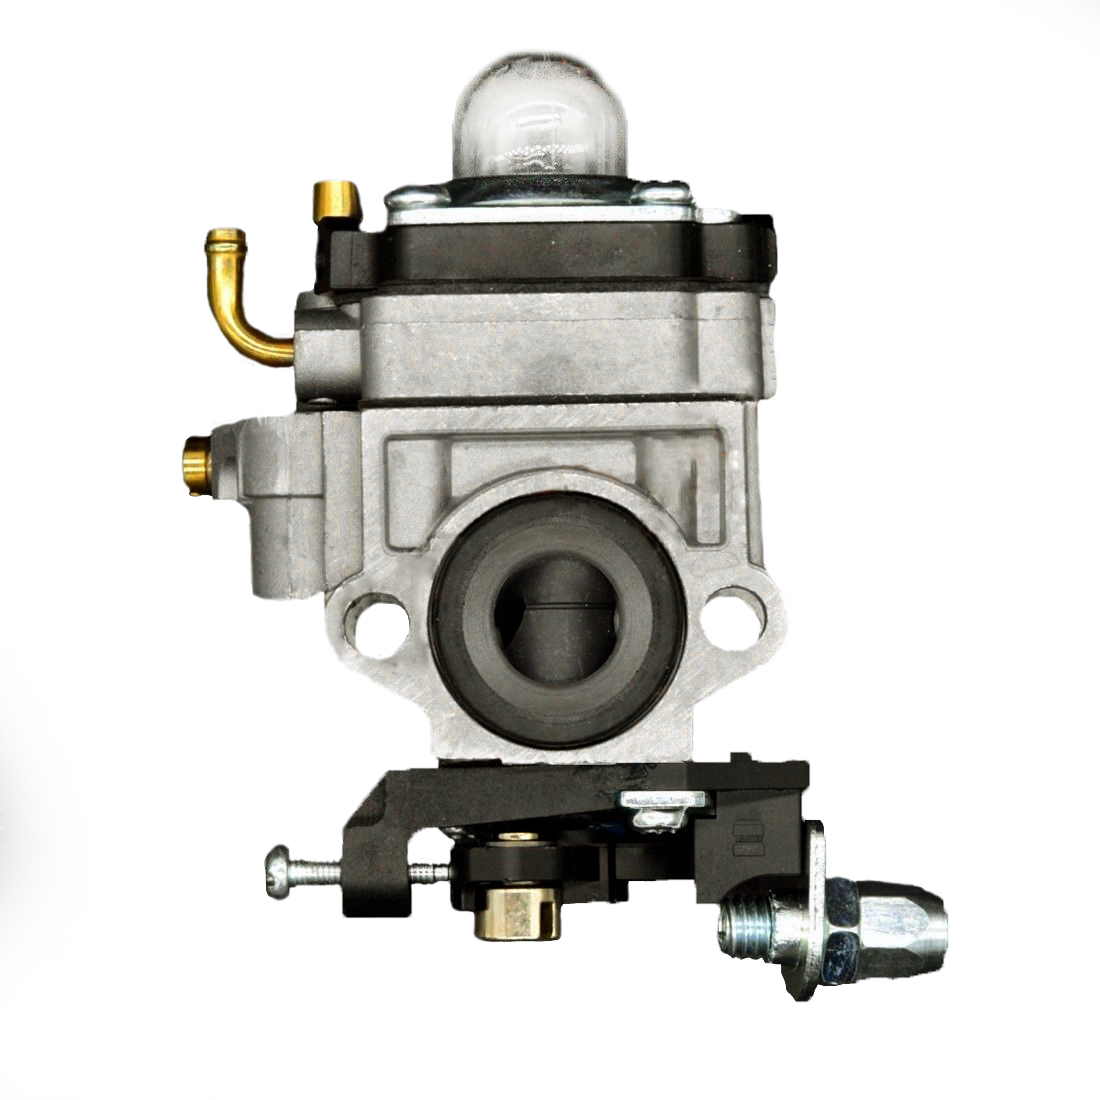 Walbro Carburetor for Echo SRM2400 Brush Cutter WYJ-220-1